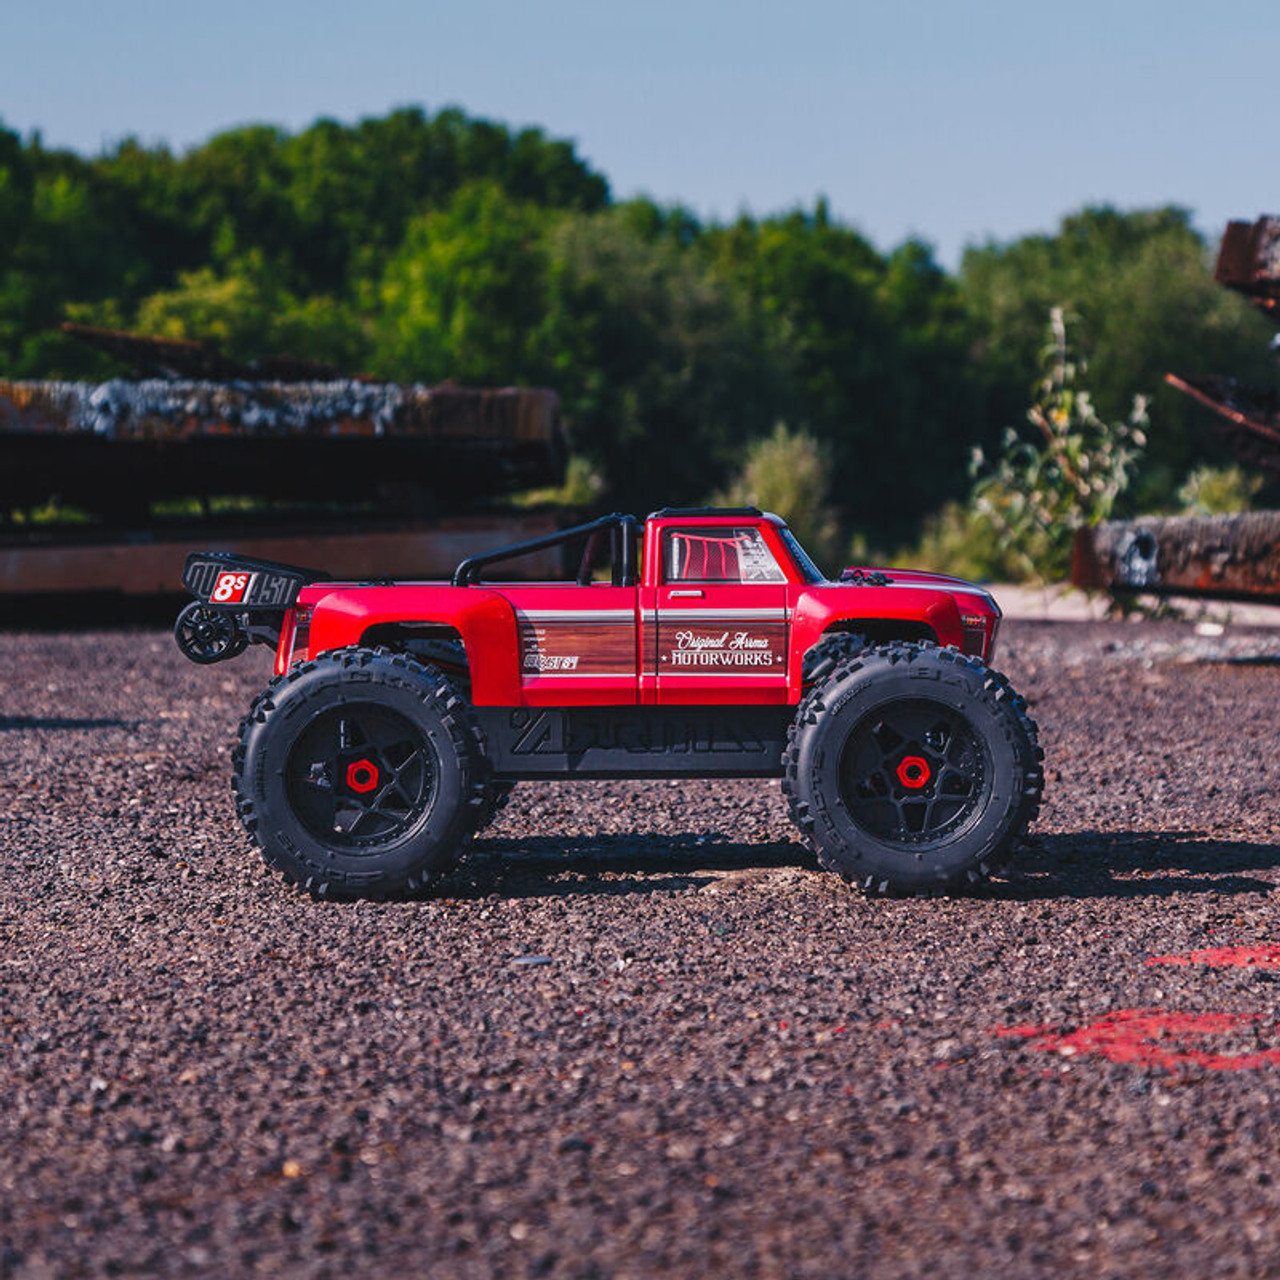 Arrma Outcast 8S BLX Brushless RTR 1/5 4WD Stunt Truck (Red) w/ DX3 Radio, Smart ESC and AVC